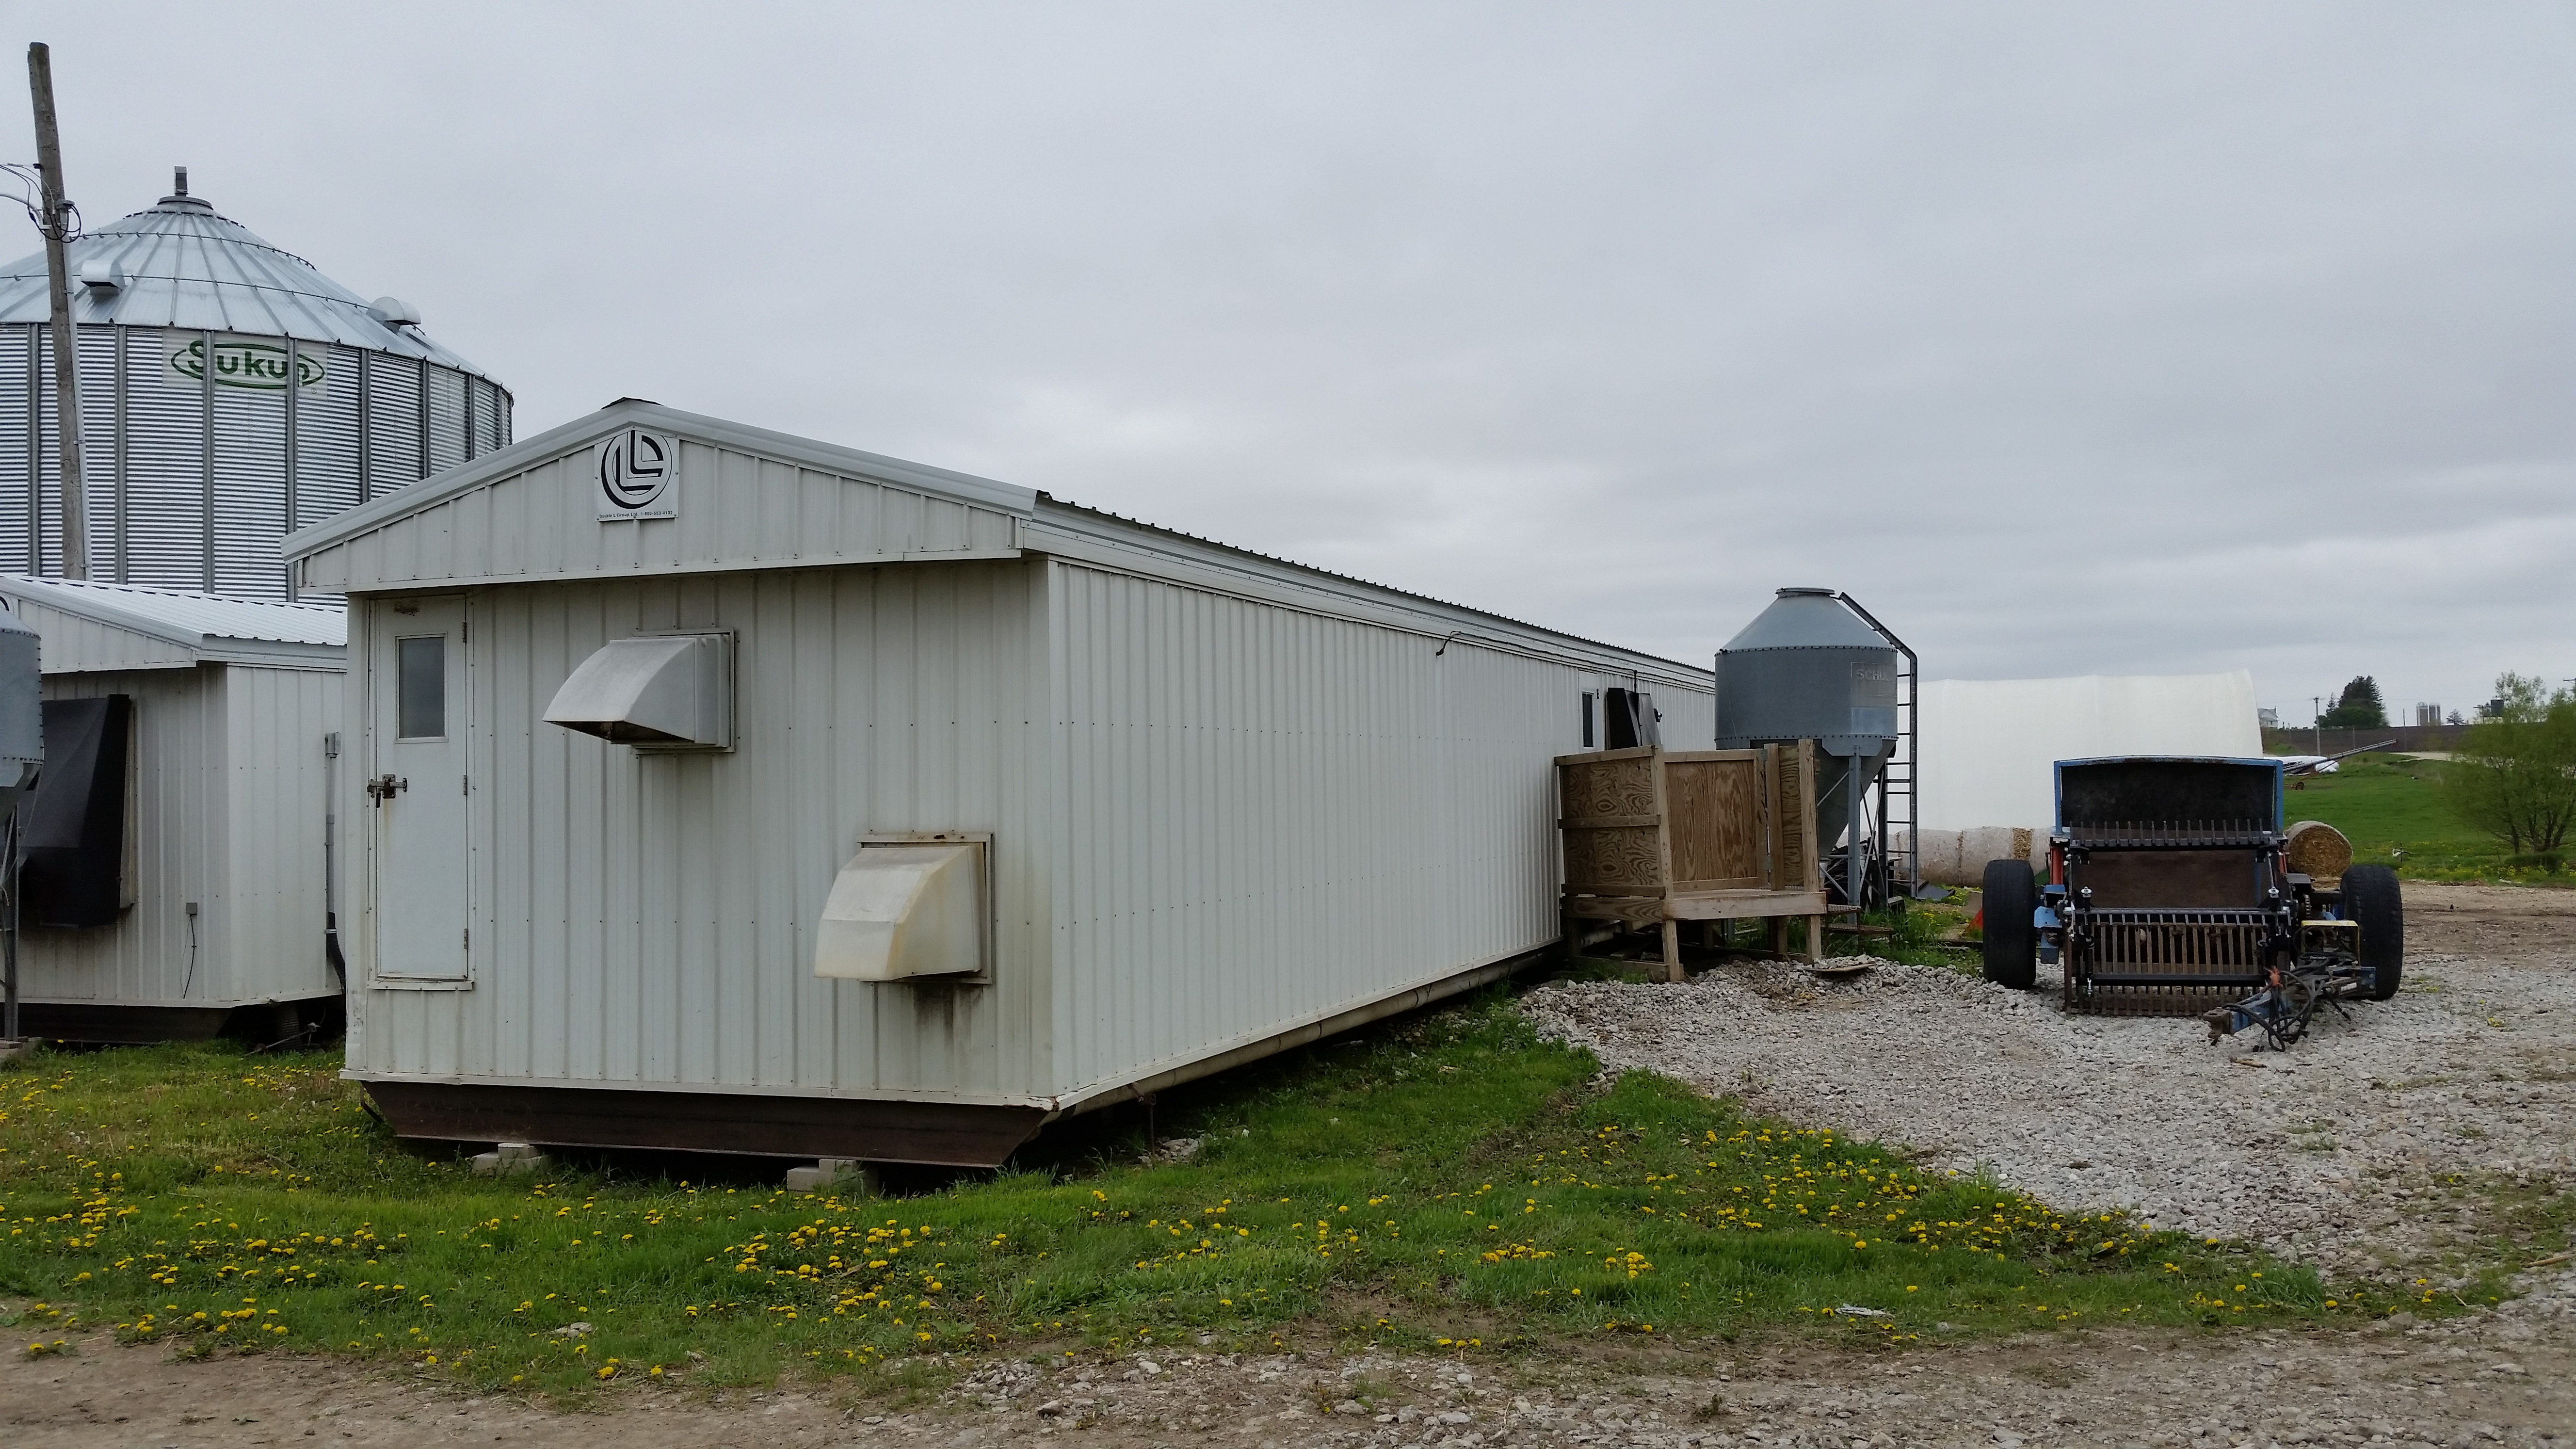 Double L Nursery 13x9x82 Feed Room In The Middle 360 Capacity 180